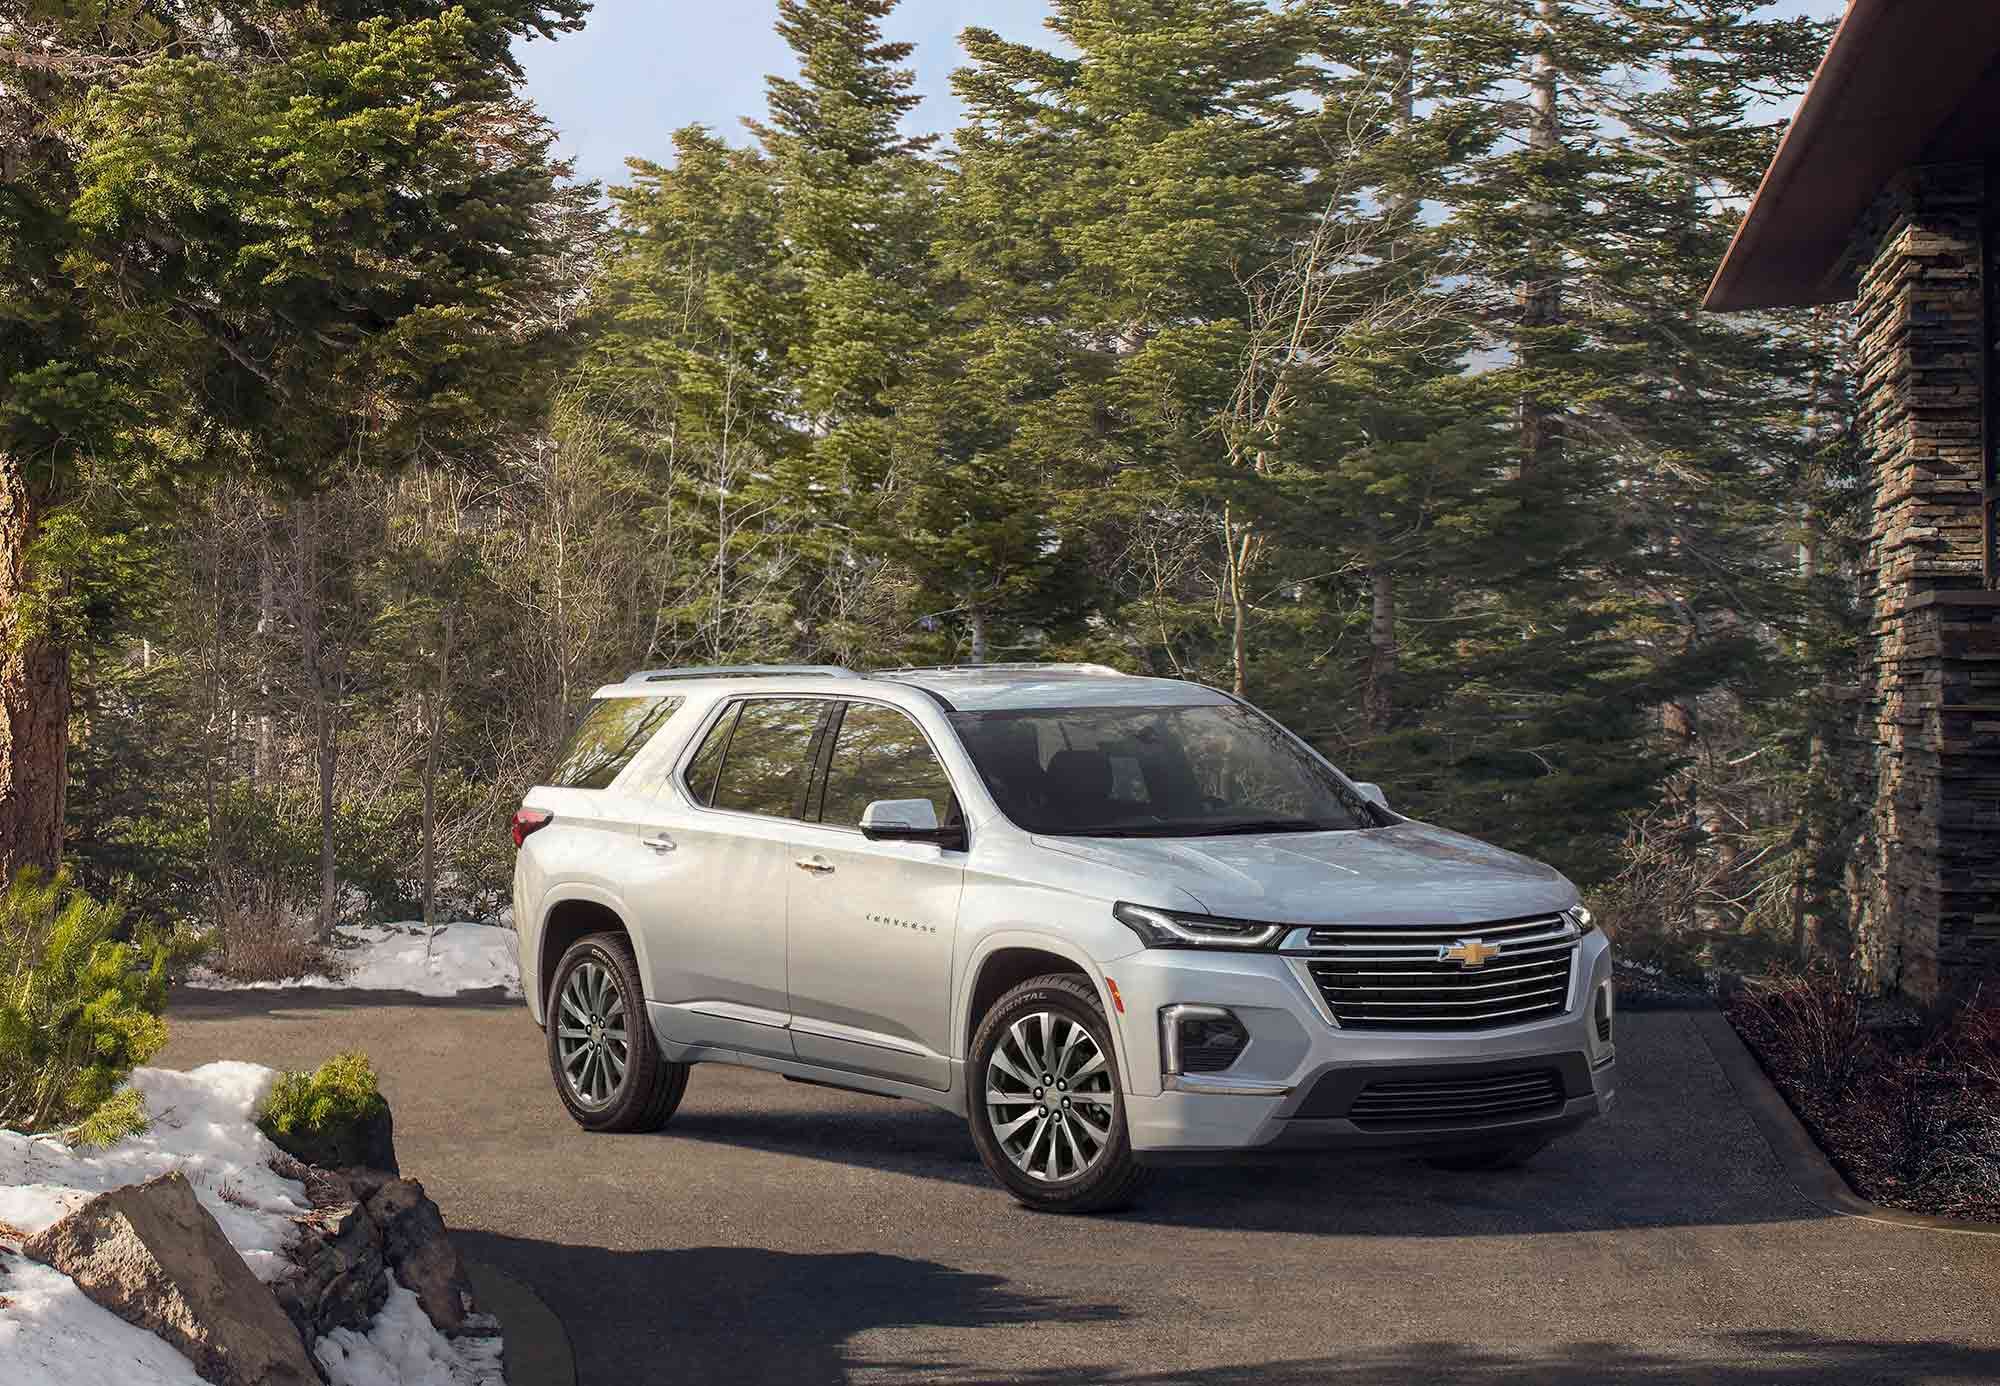 The 2021 Chevrolet Traverse can tow up to 5,000 pounds.